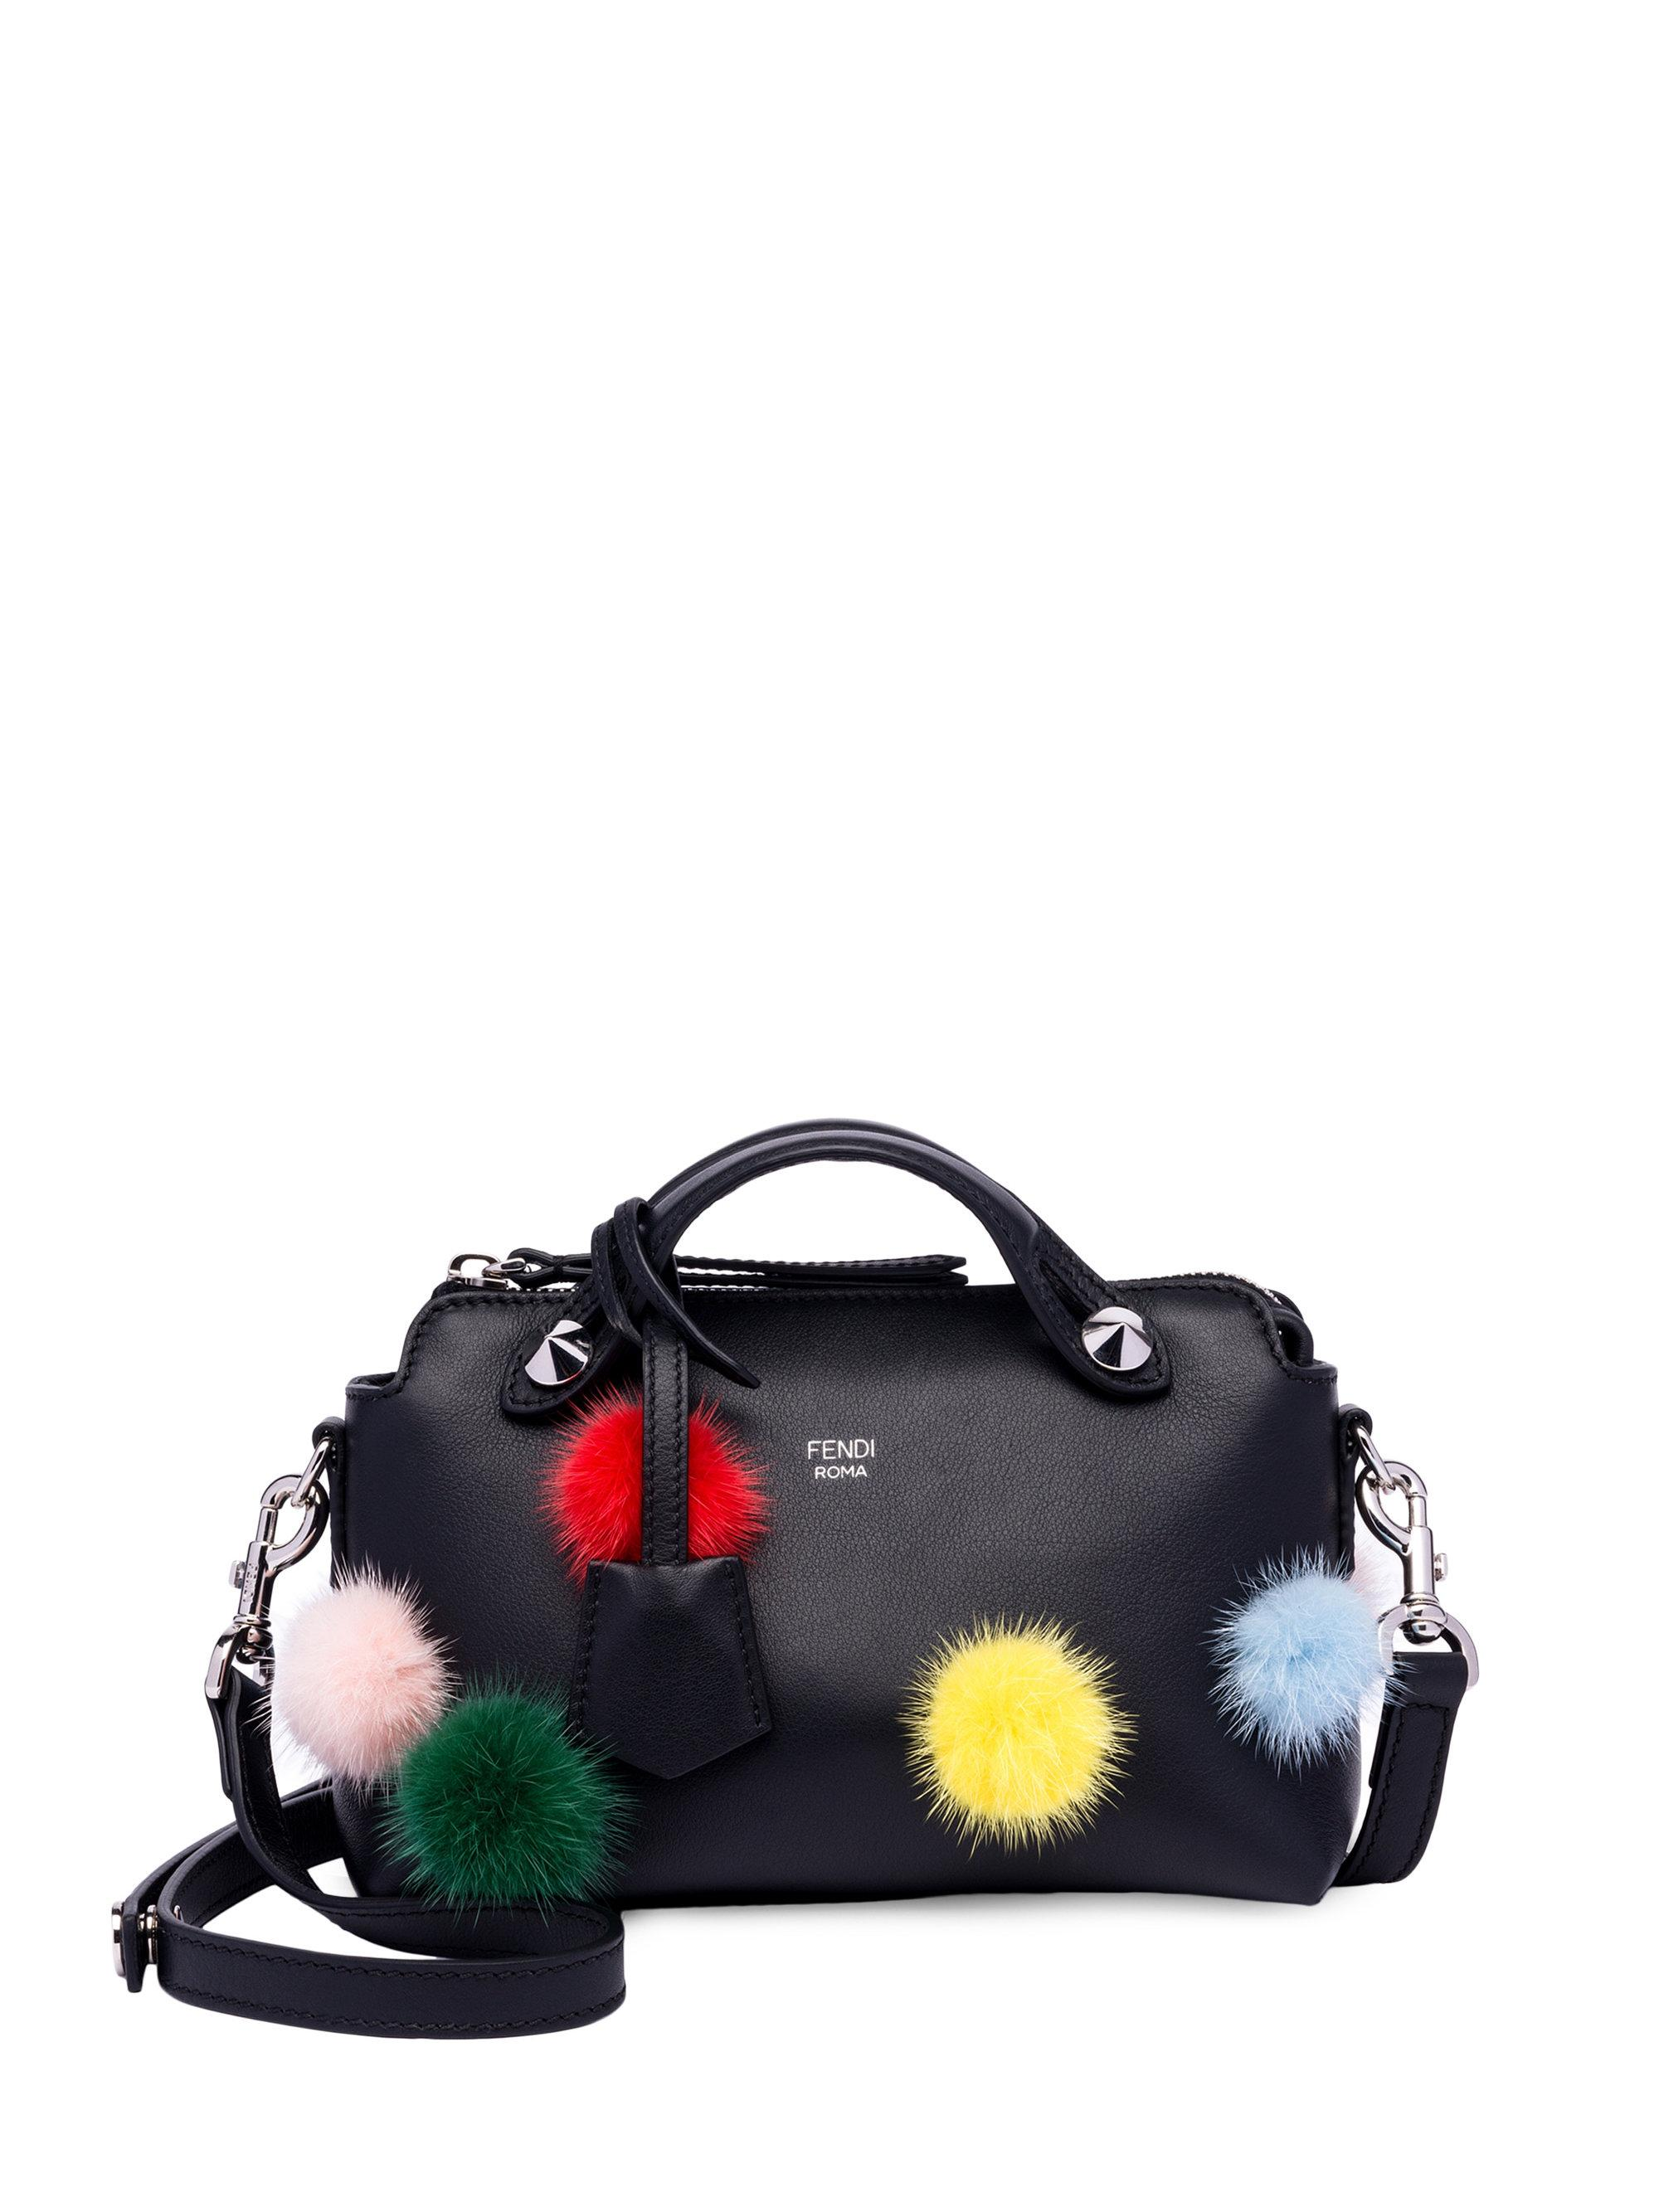 e8c96e2e3aff ... buy lyst fendi by the way mink fur pom pom leather boston bag in black  66821 ...